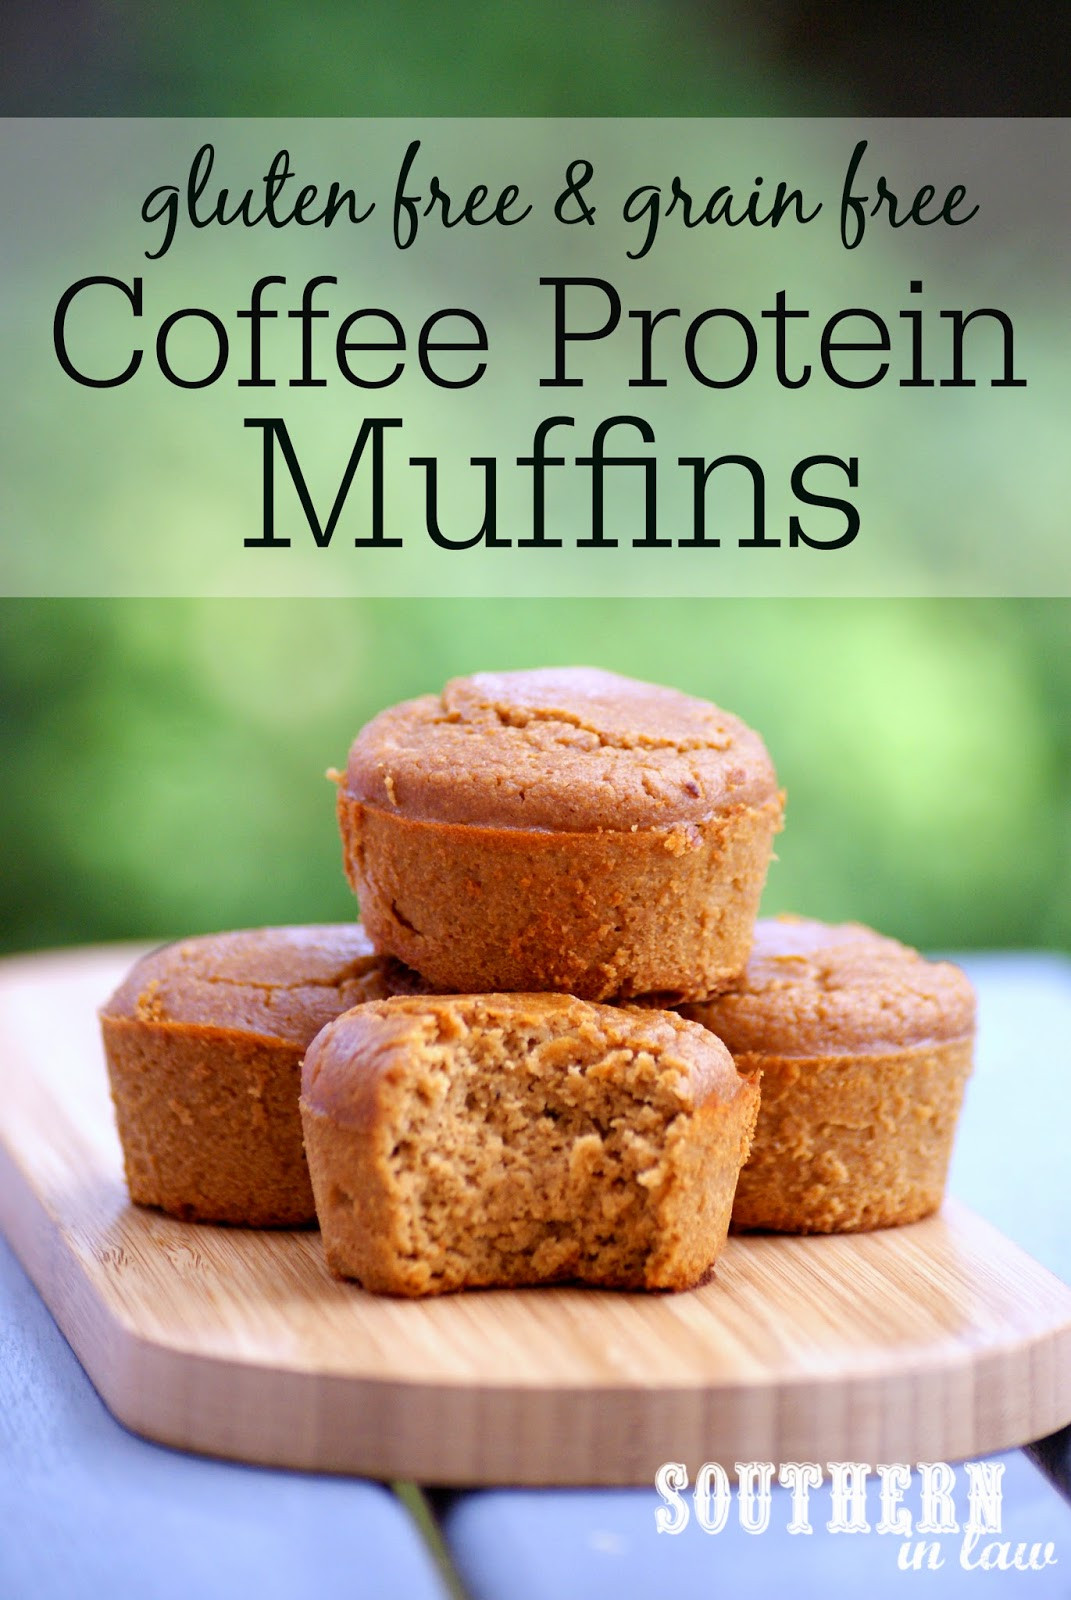 Low Fat Low Sugar Recipes  Southern In Law Recipe Healthy Coffee Protein Muffins